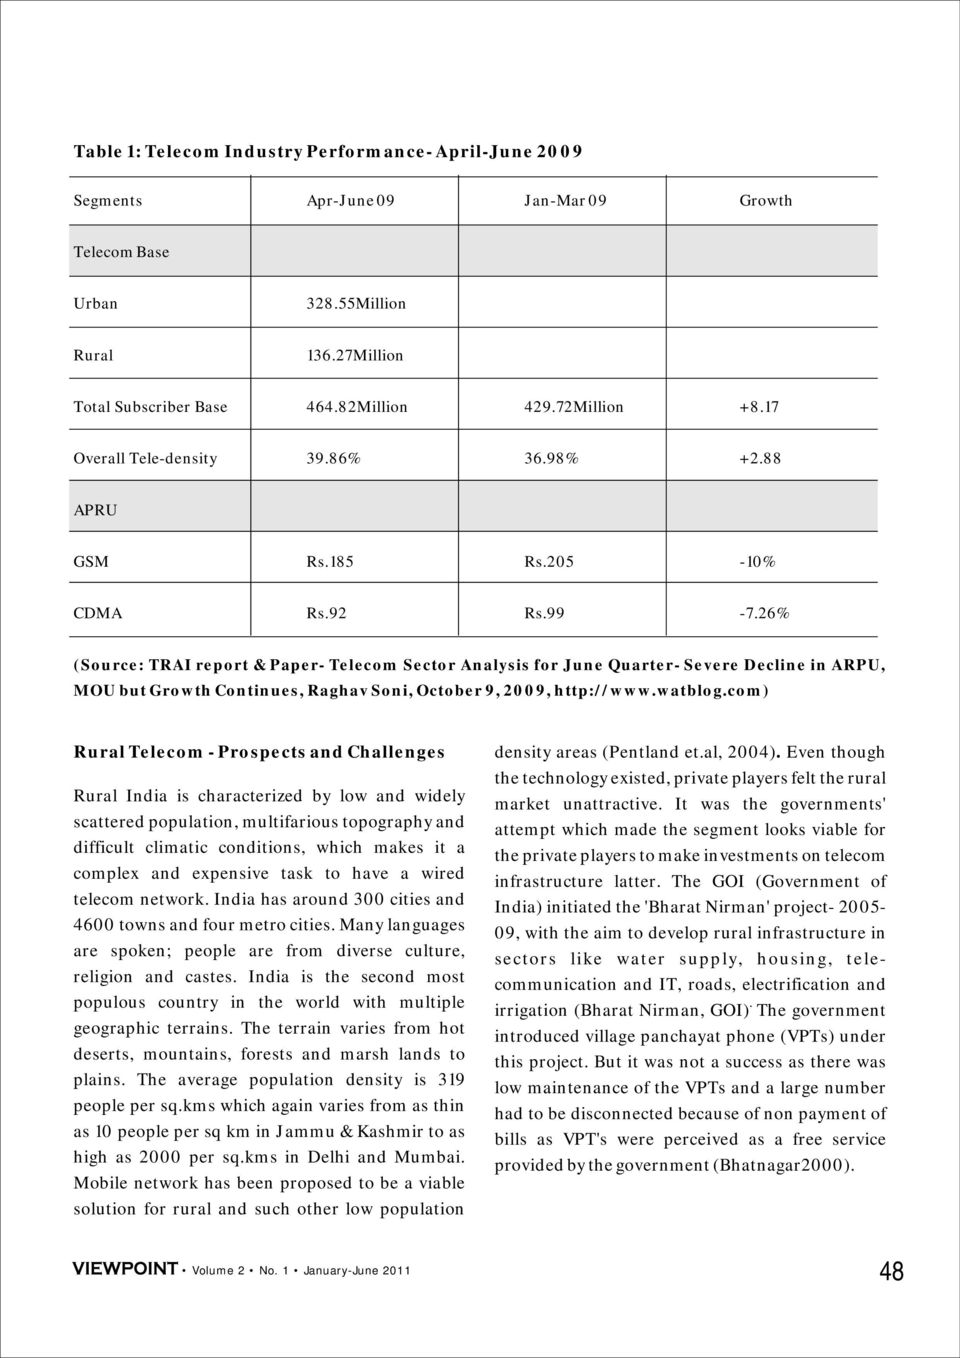 26% (Source: TRAI report & Paper- Telecom Sector Analysis for June Quarter- Severe Decline in ARPU, MOU but Growth Continues, Raghav Soni, October 9, 2009, http://www.watblog.